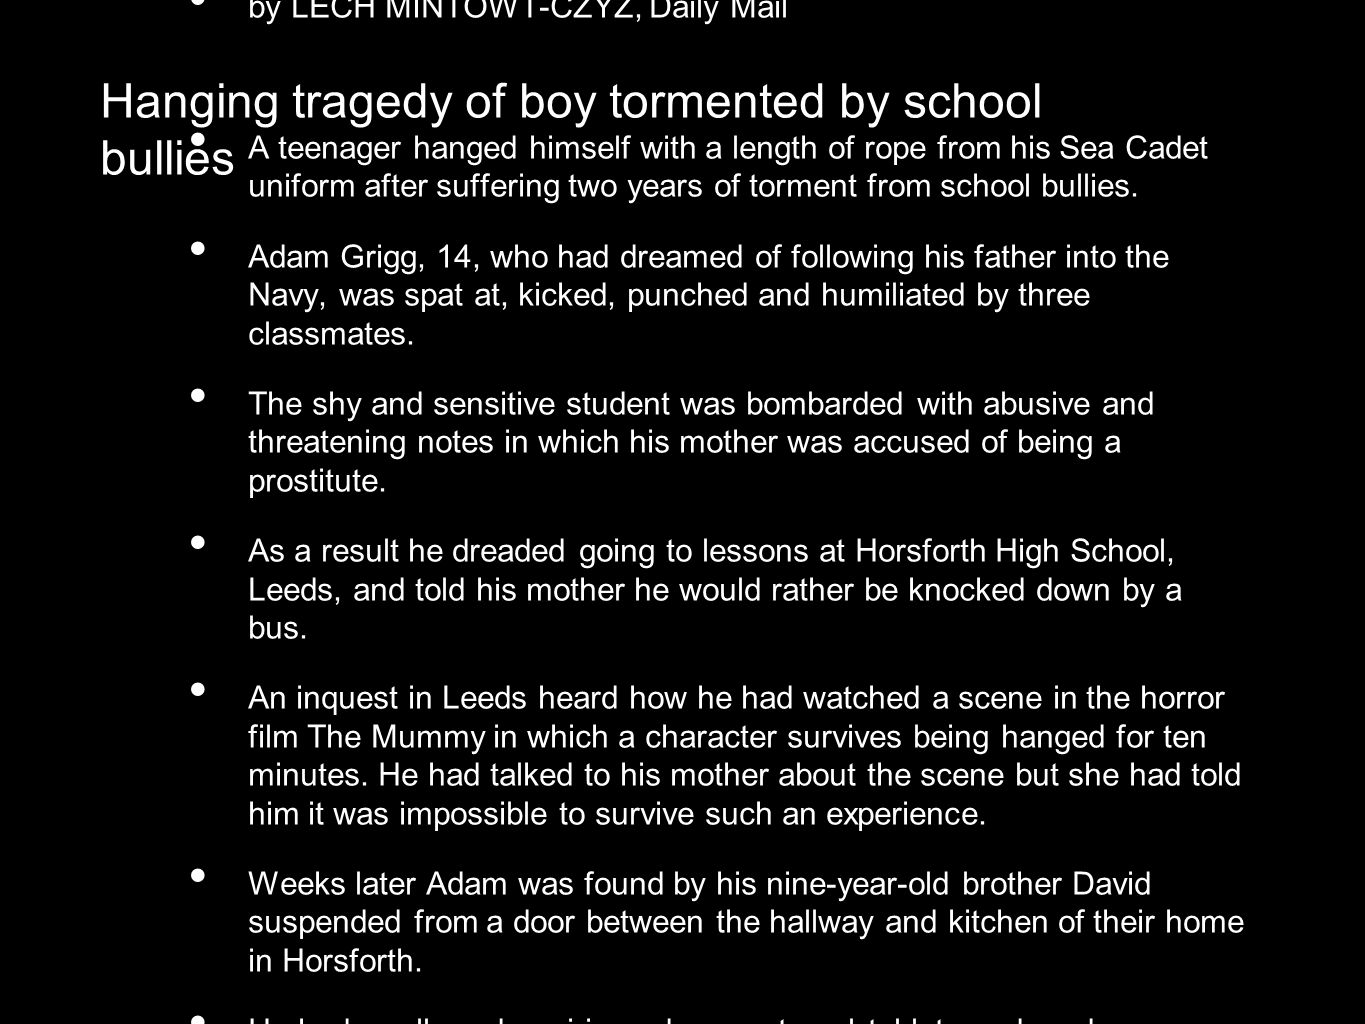 Hanging tragedy of boy tormented by school bullies by LECH MINTOWT-CZYZ, Daily Mail A teenager hanged himself with a length of rope from his Sea Cadet